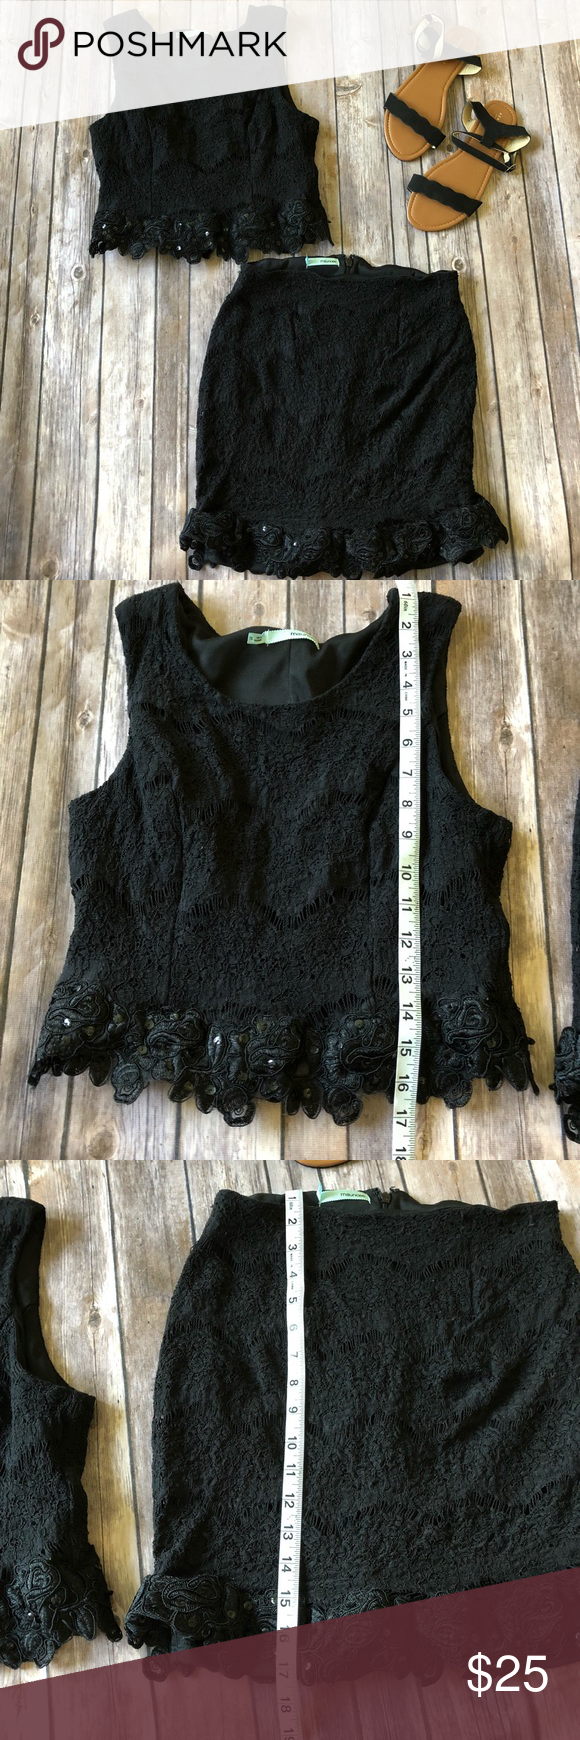 Maurices piece black lace skirt u tanks size my posh closet